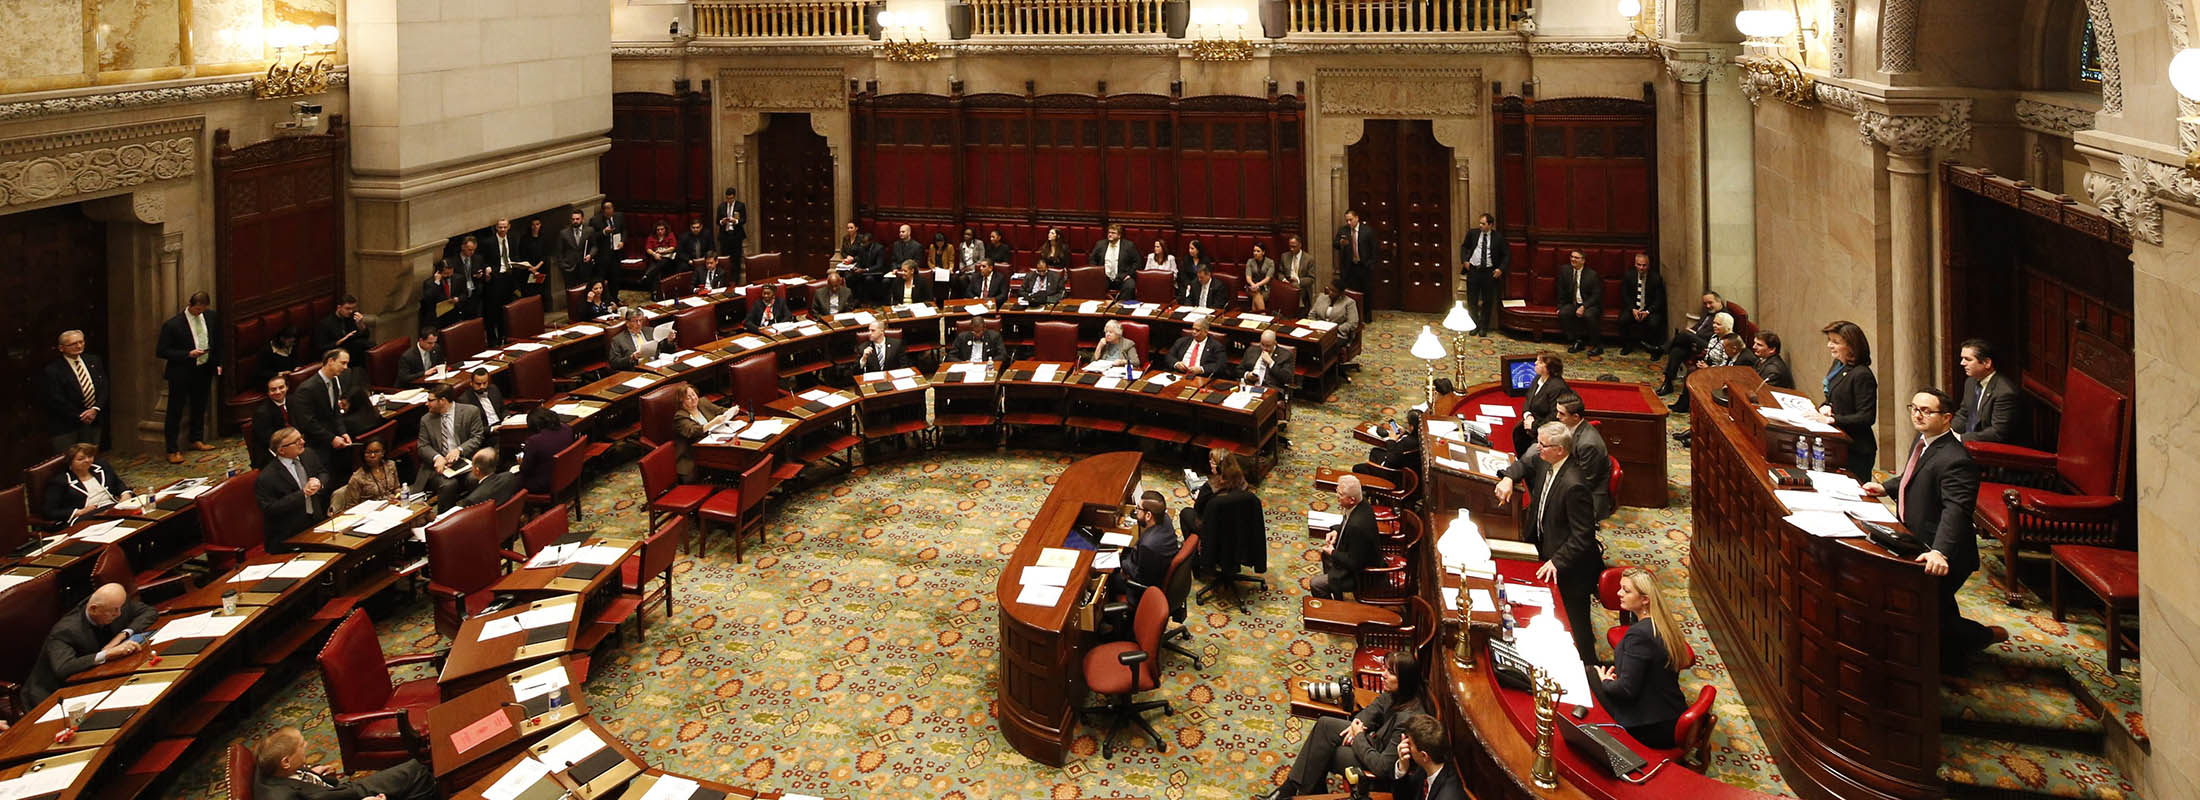 Lt. Gov. Kathy Hochul presides over the New York State Senate during session at the Capitol in Albany in 2016.  (Derek Gee/News file photo)